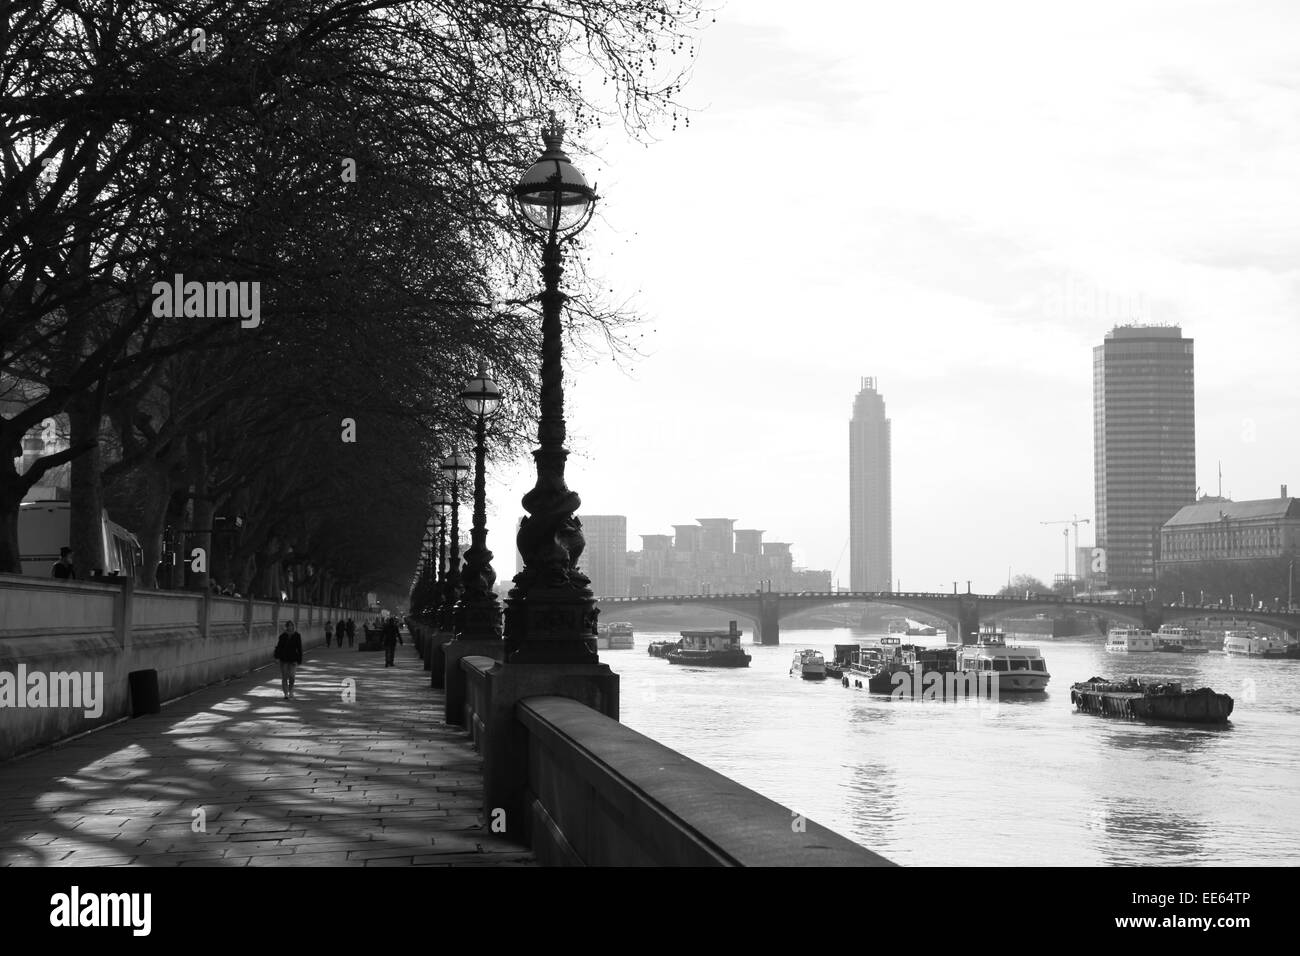 Thames embankment looking up river. London - Stock Image